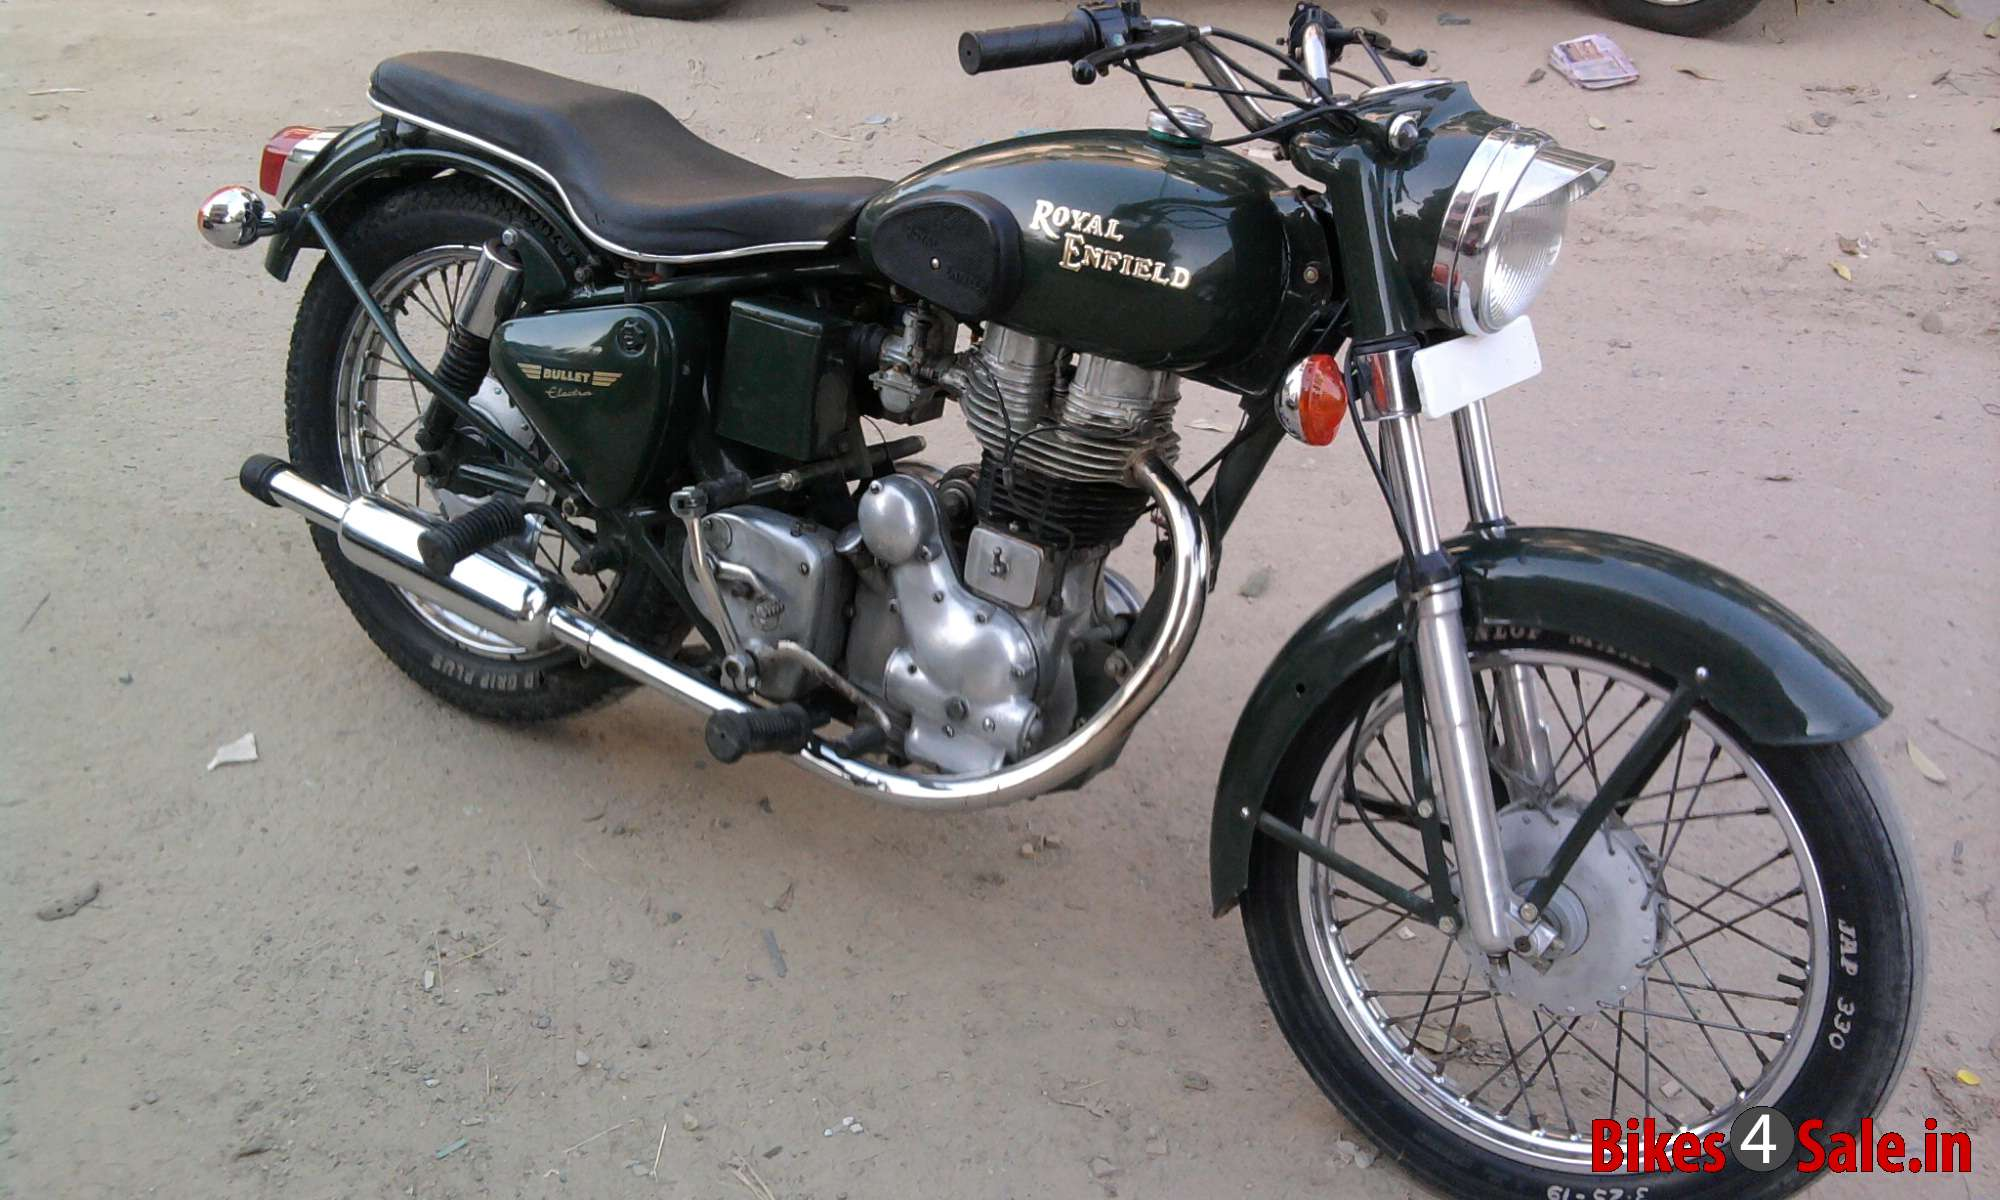 Royal Enfield Bullet 350 Army 1999 images #122856